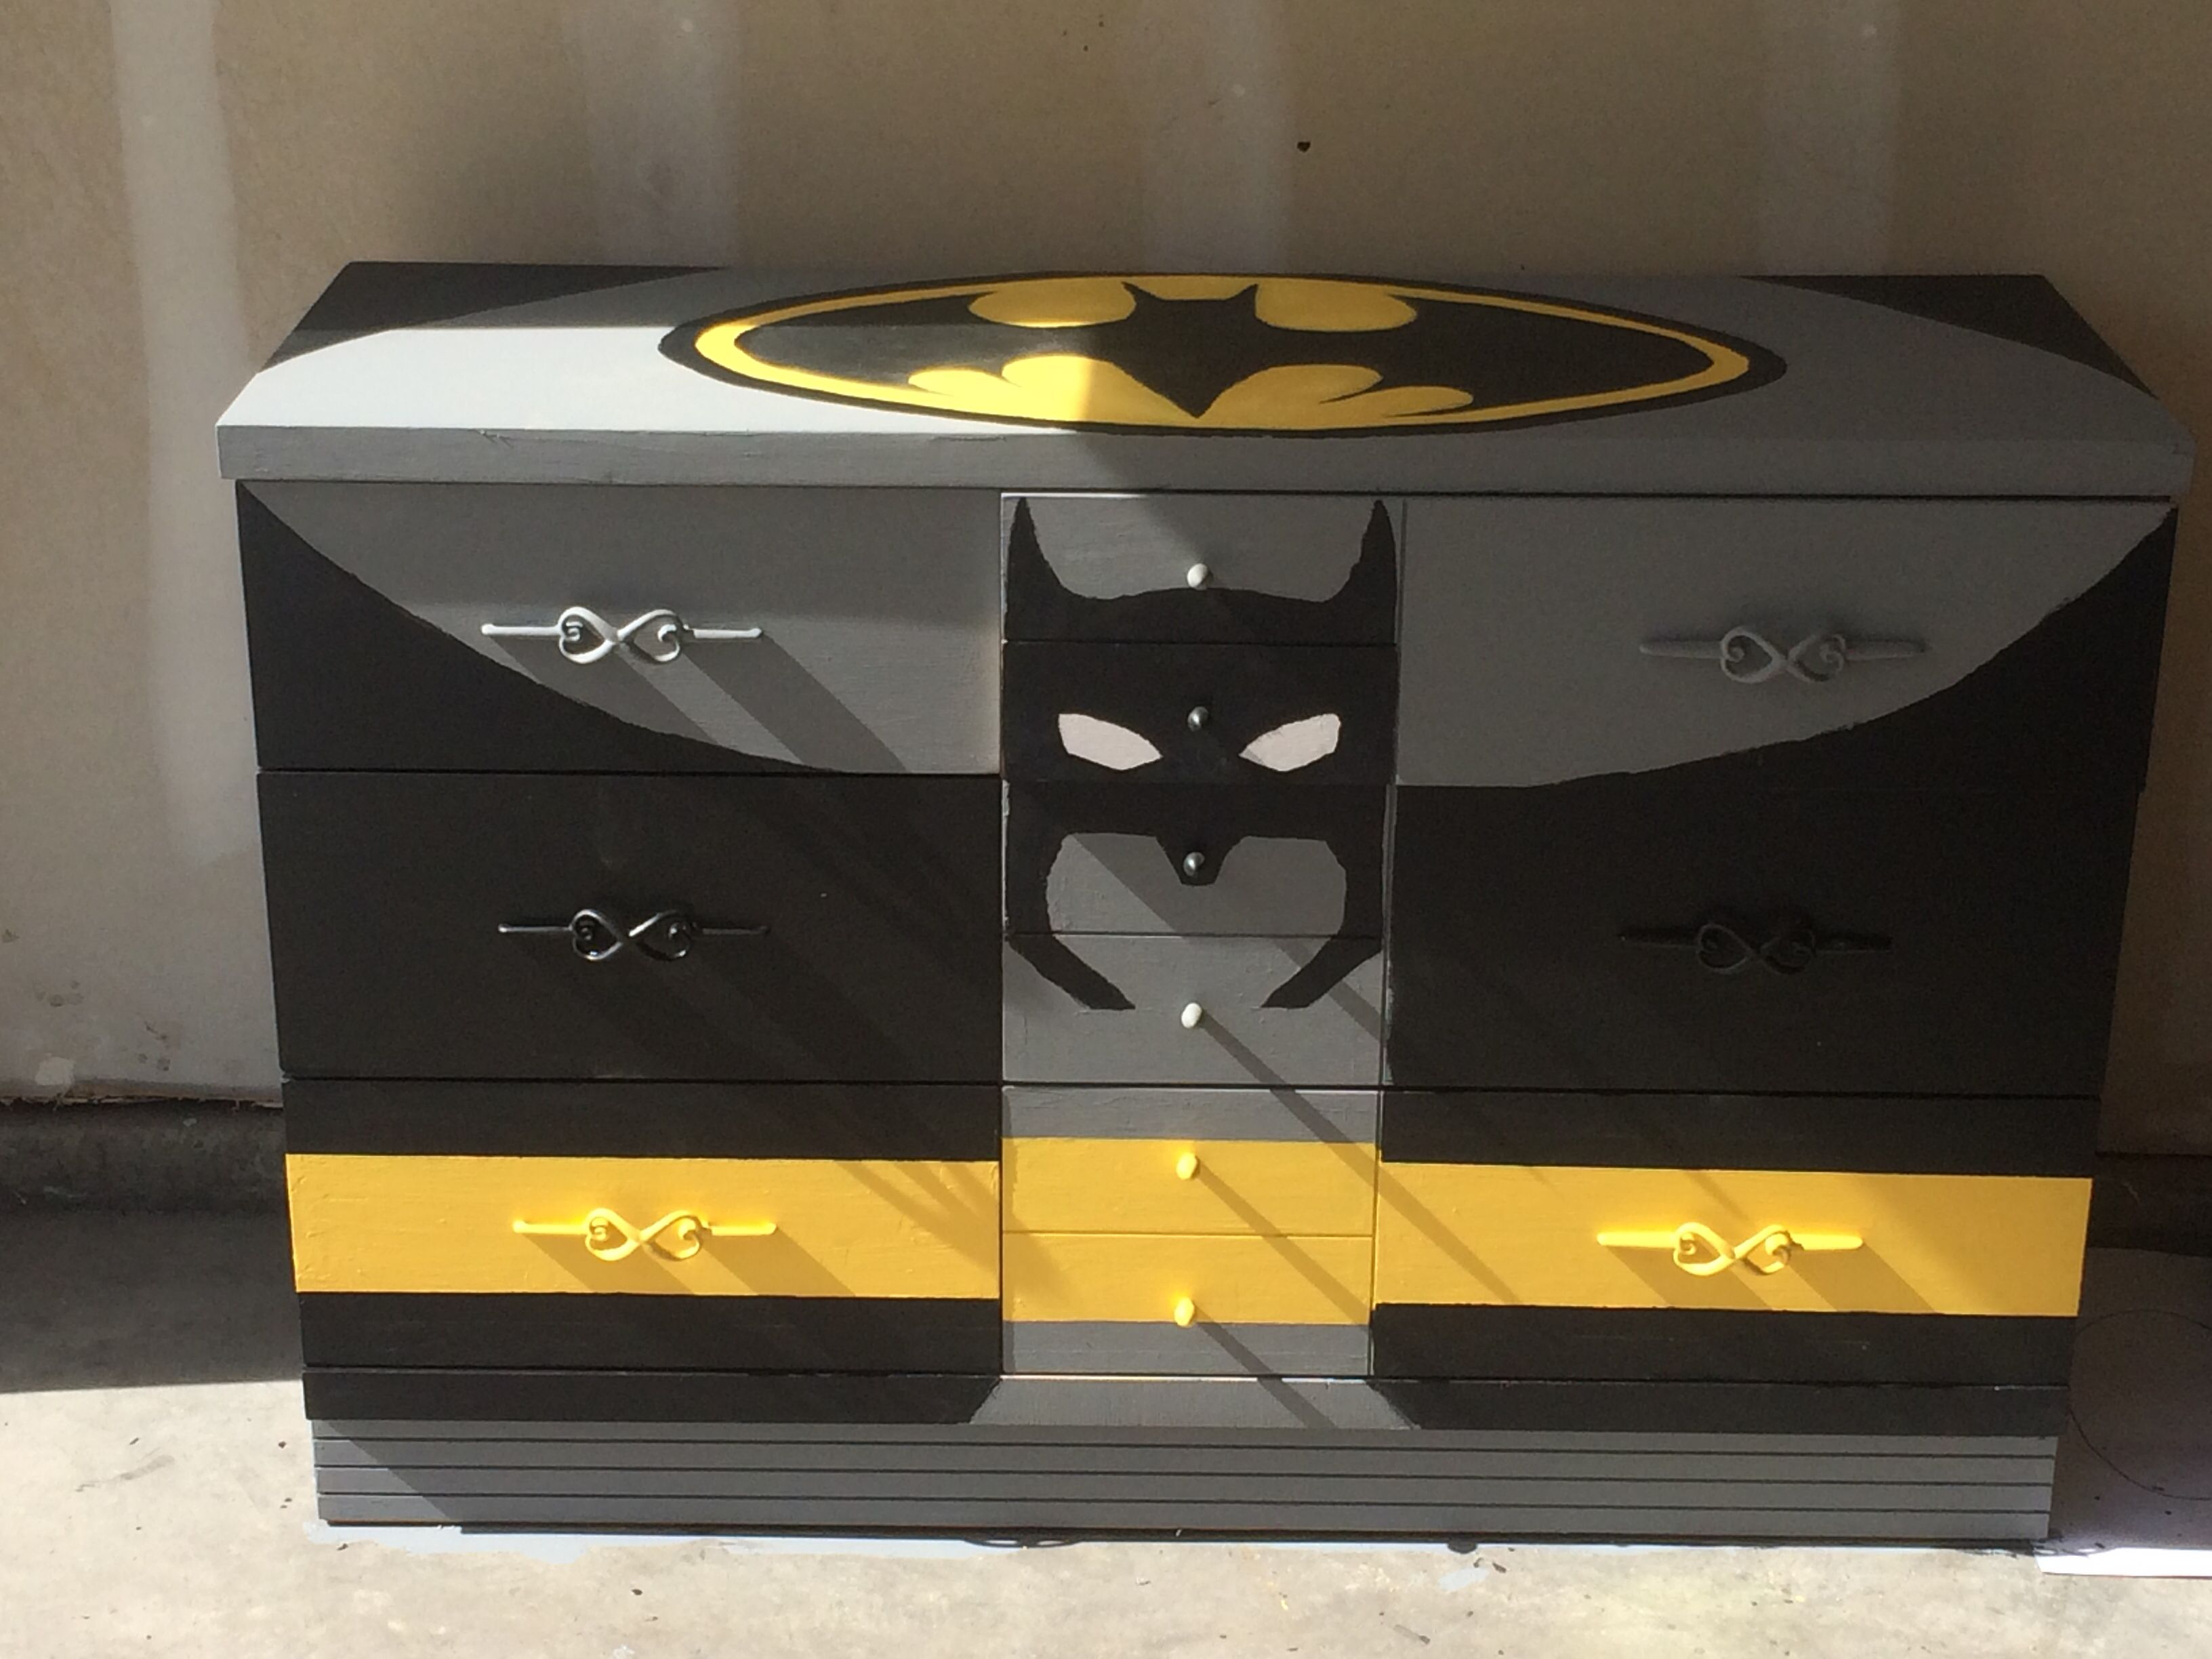 Batman Bedroom Furniture #16: Batman Dresser With Chalkboard Paint